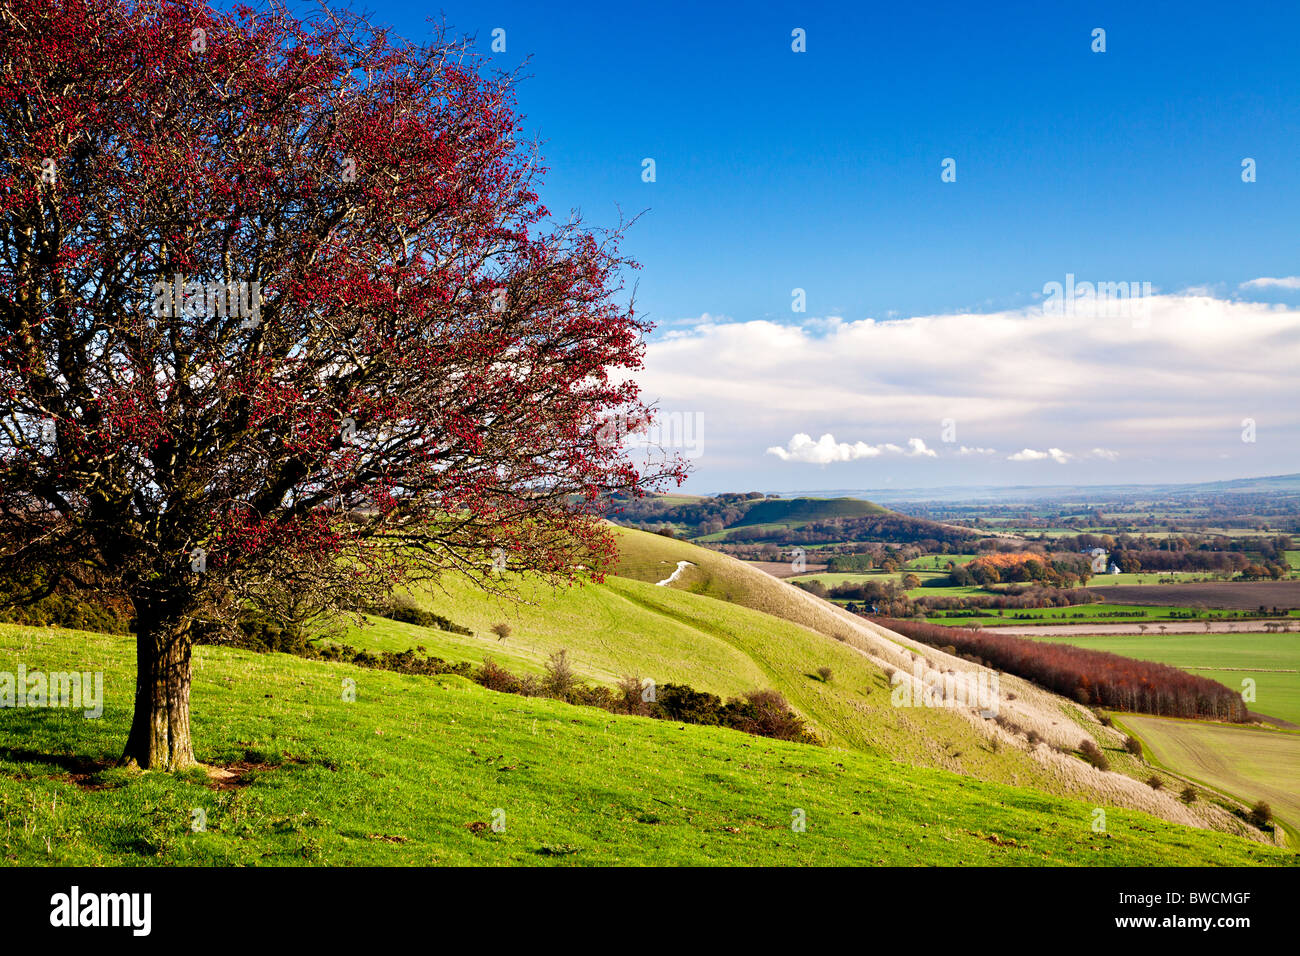 L'aubépine ou arbre aux fruits rouges sur Knapp Hill surplombant la vallée de Pewsey dans le Wiltshire, Photo Stock